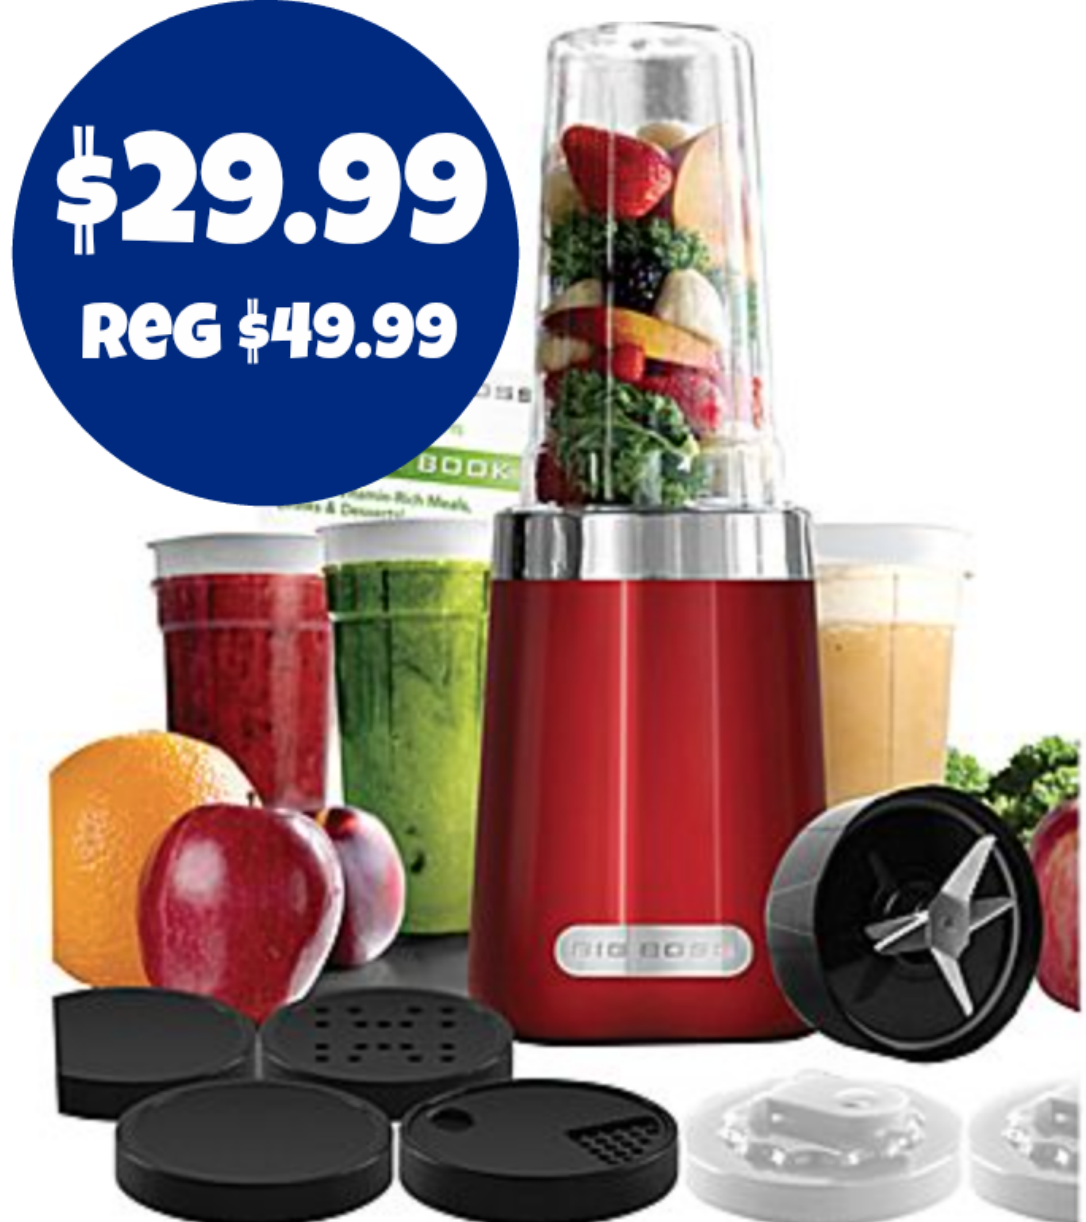 http://www.thebinderladies.com/2015/01/staples-com-healthy-boss-600w-blender.html